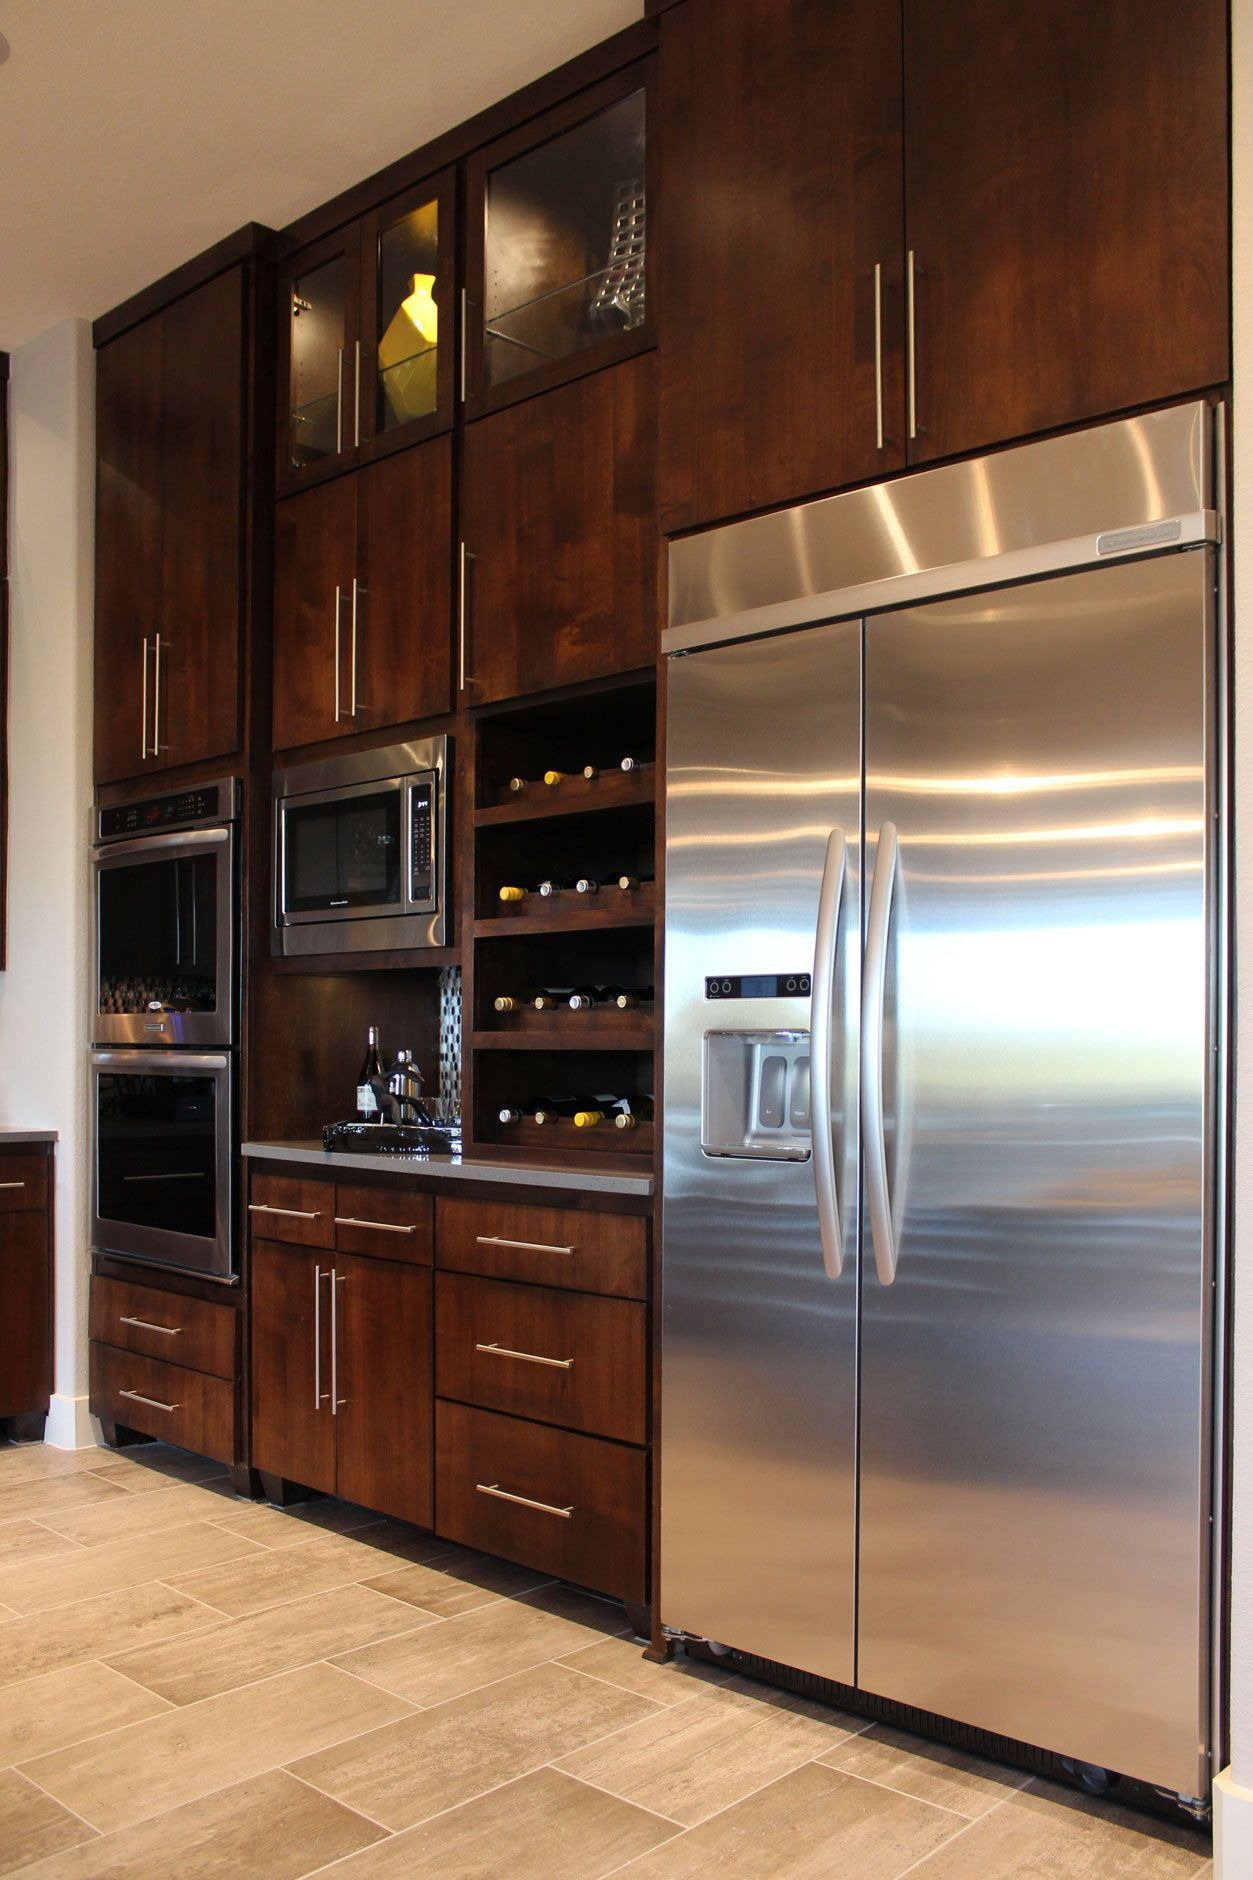 Flat Panel Cabinet Doors 2020 In 2020 Alder Kitchen Cabinets Aluminum Kitchen Cabinets Replacing Kitchen Cabinets